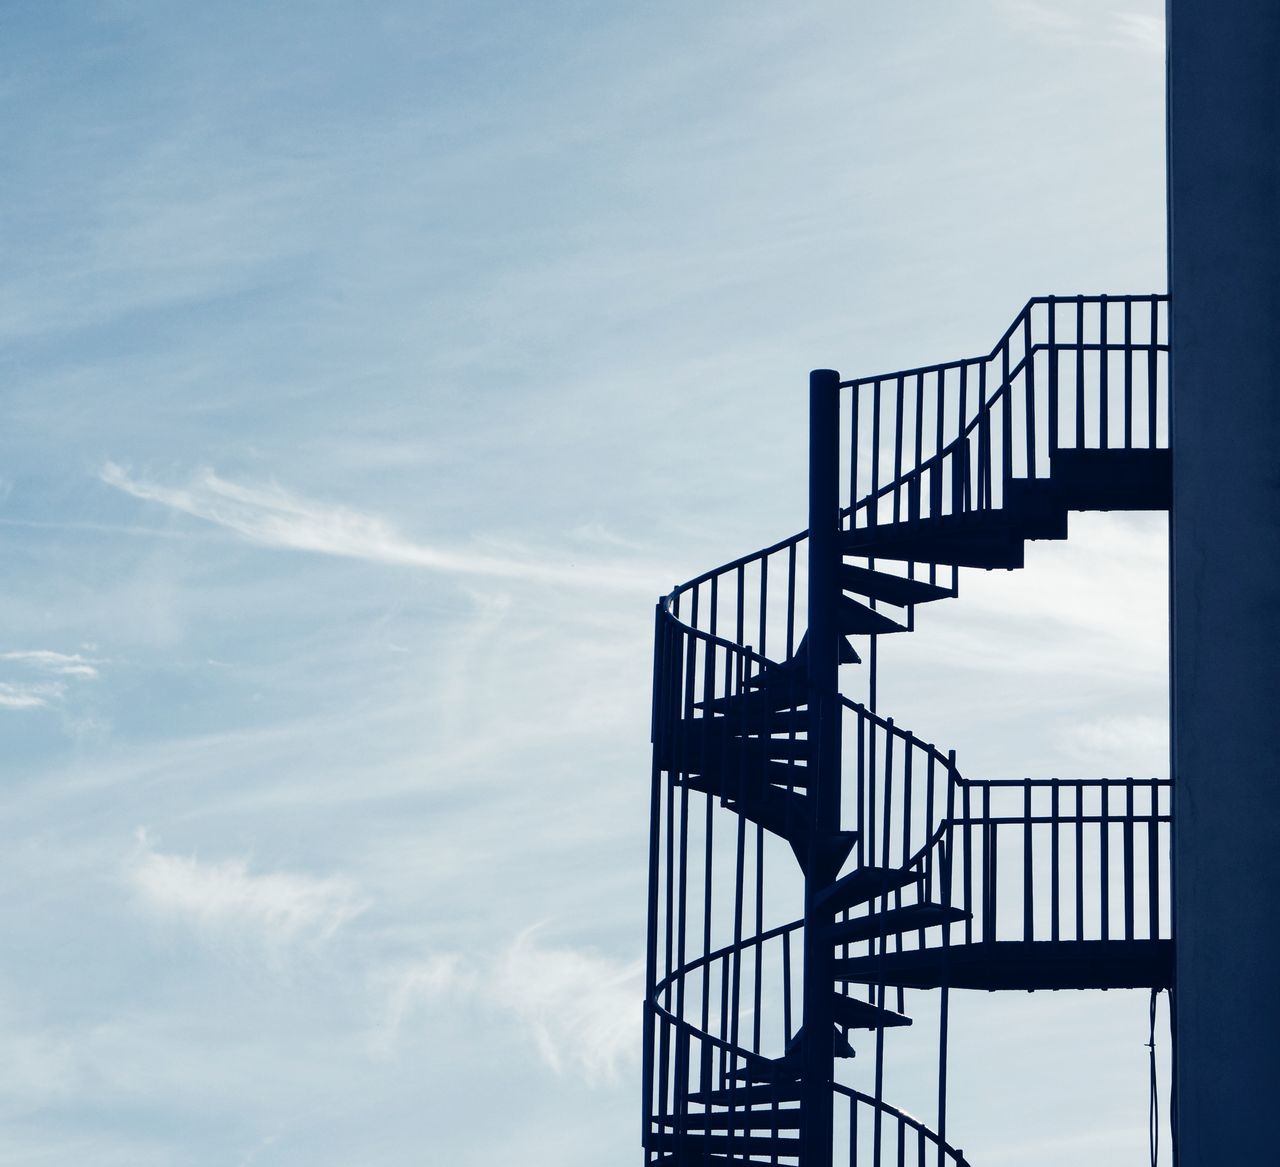 No People Sky Day Outdoors Architecture Low Angle View Stairs Stairs & Shadows Negative Space Built Structure Building Buildings & Sky Buildingstyles Silhouette Silhoutte Photography